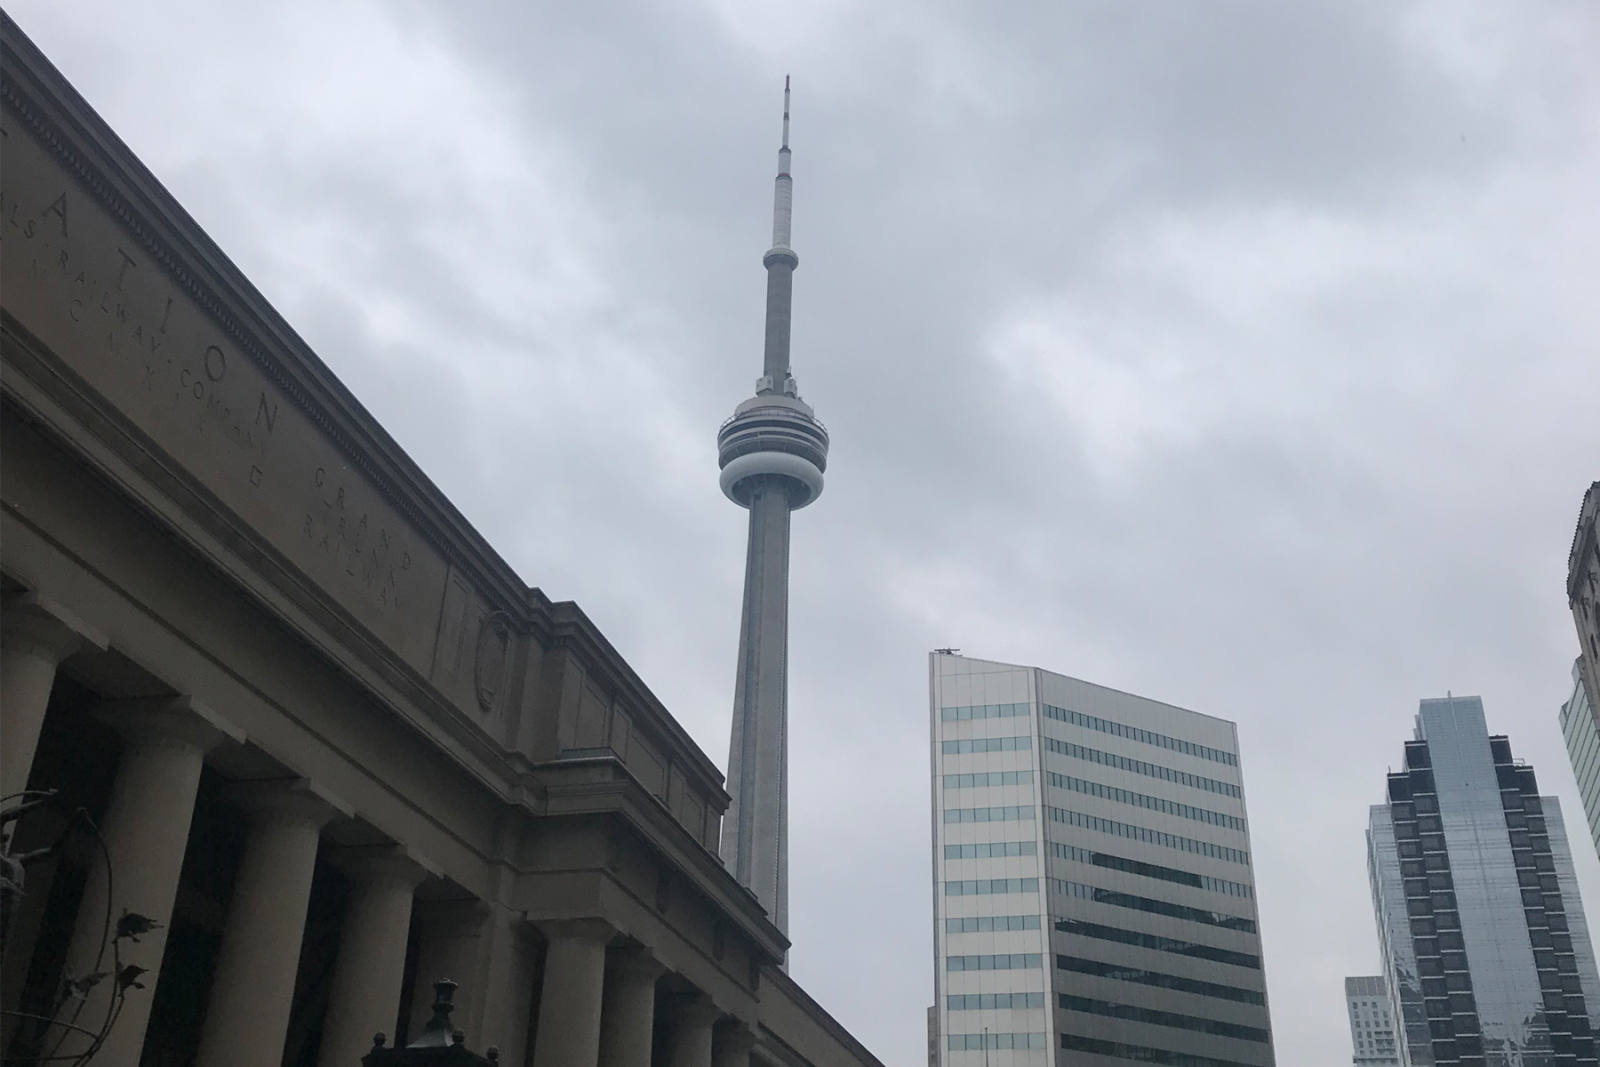 StackAdapt Awarded in Toronto